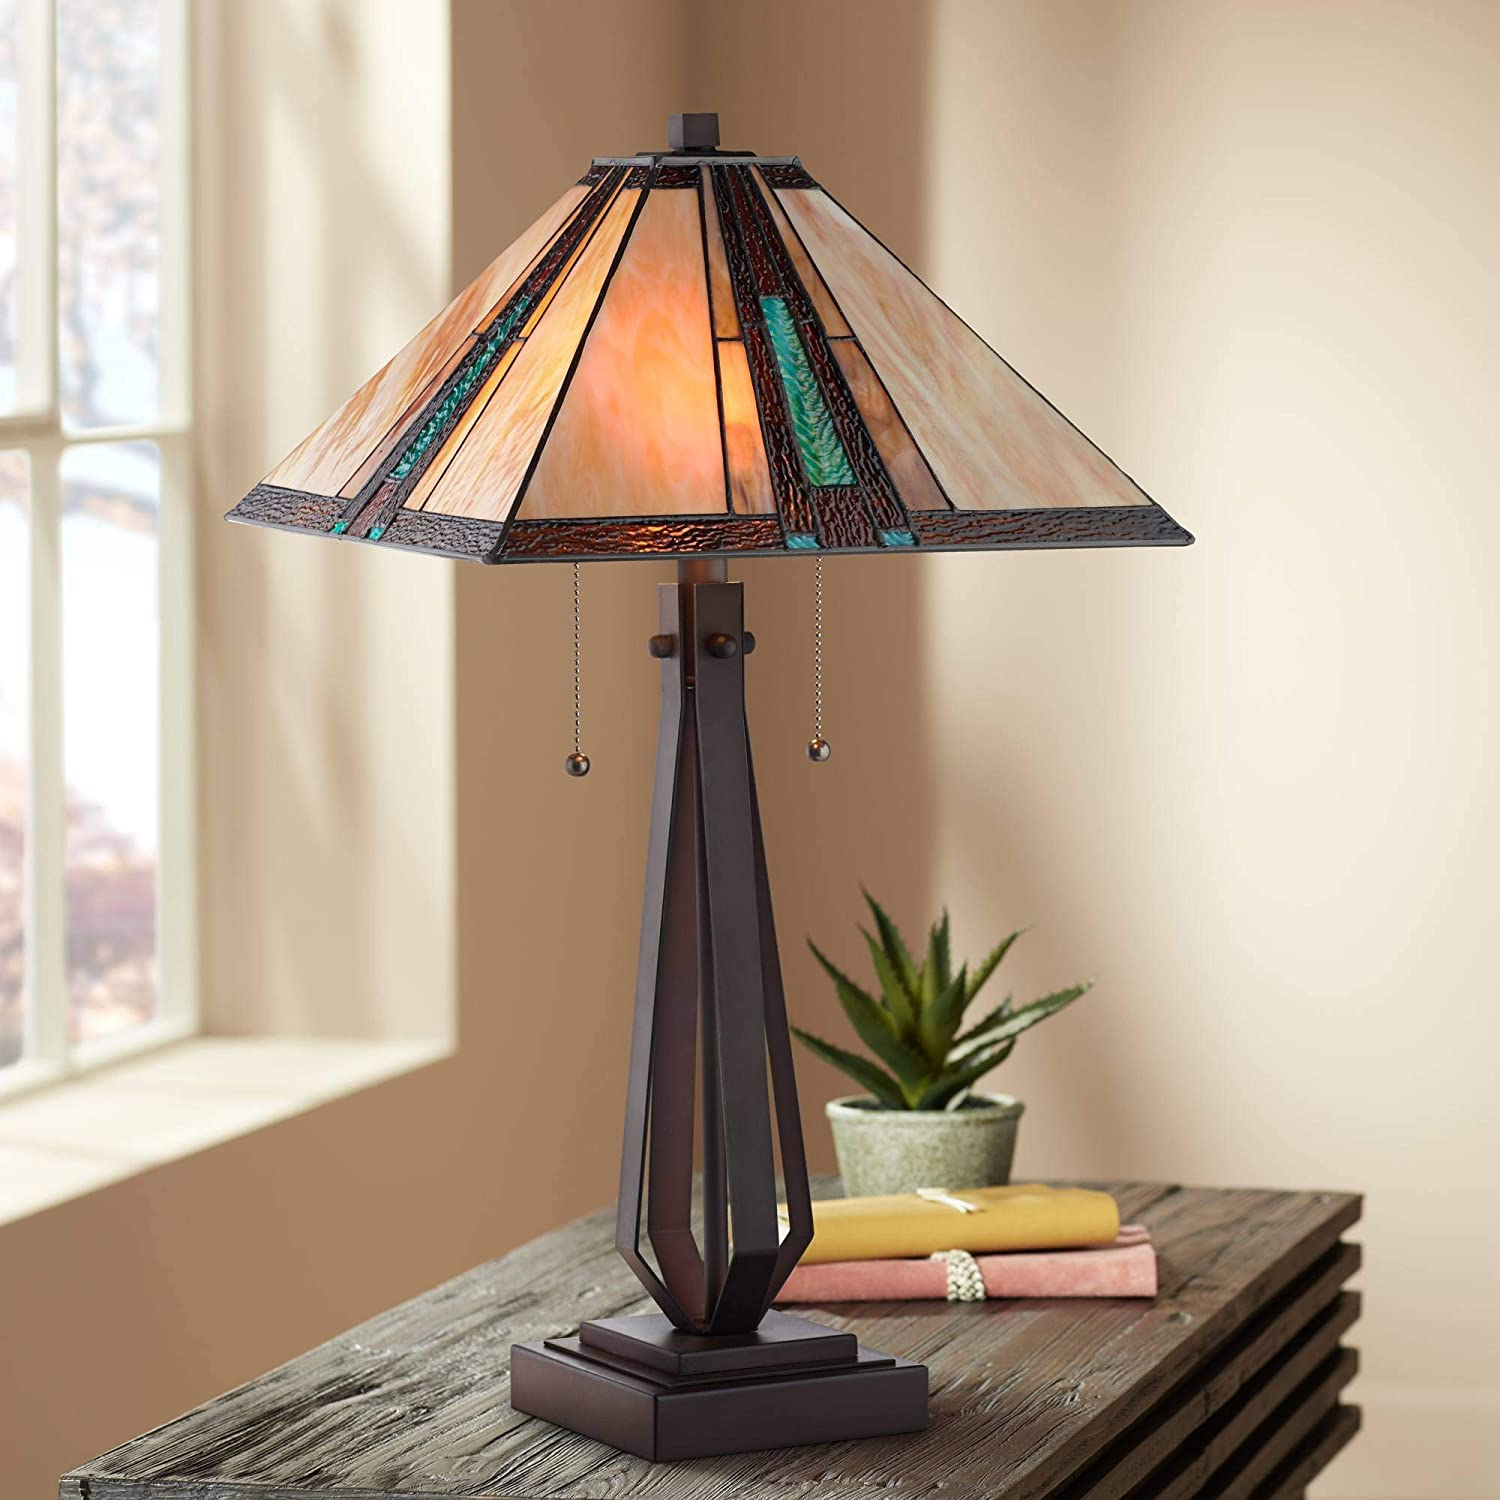 Roger Marta Mission Southwestern Tiffany Style Table Lamp Bronze Brown Metal Stained Art Glass Shade Decor for Living Room Bedroom House Bedside Nightstand Home Office Family - Franklin Iron Works